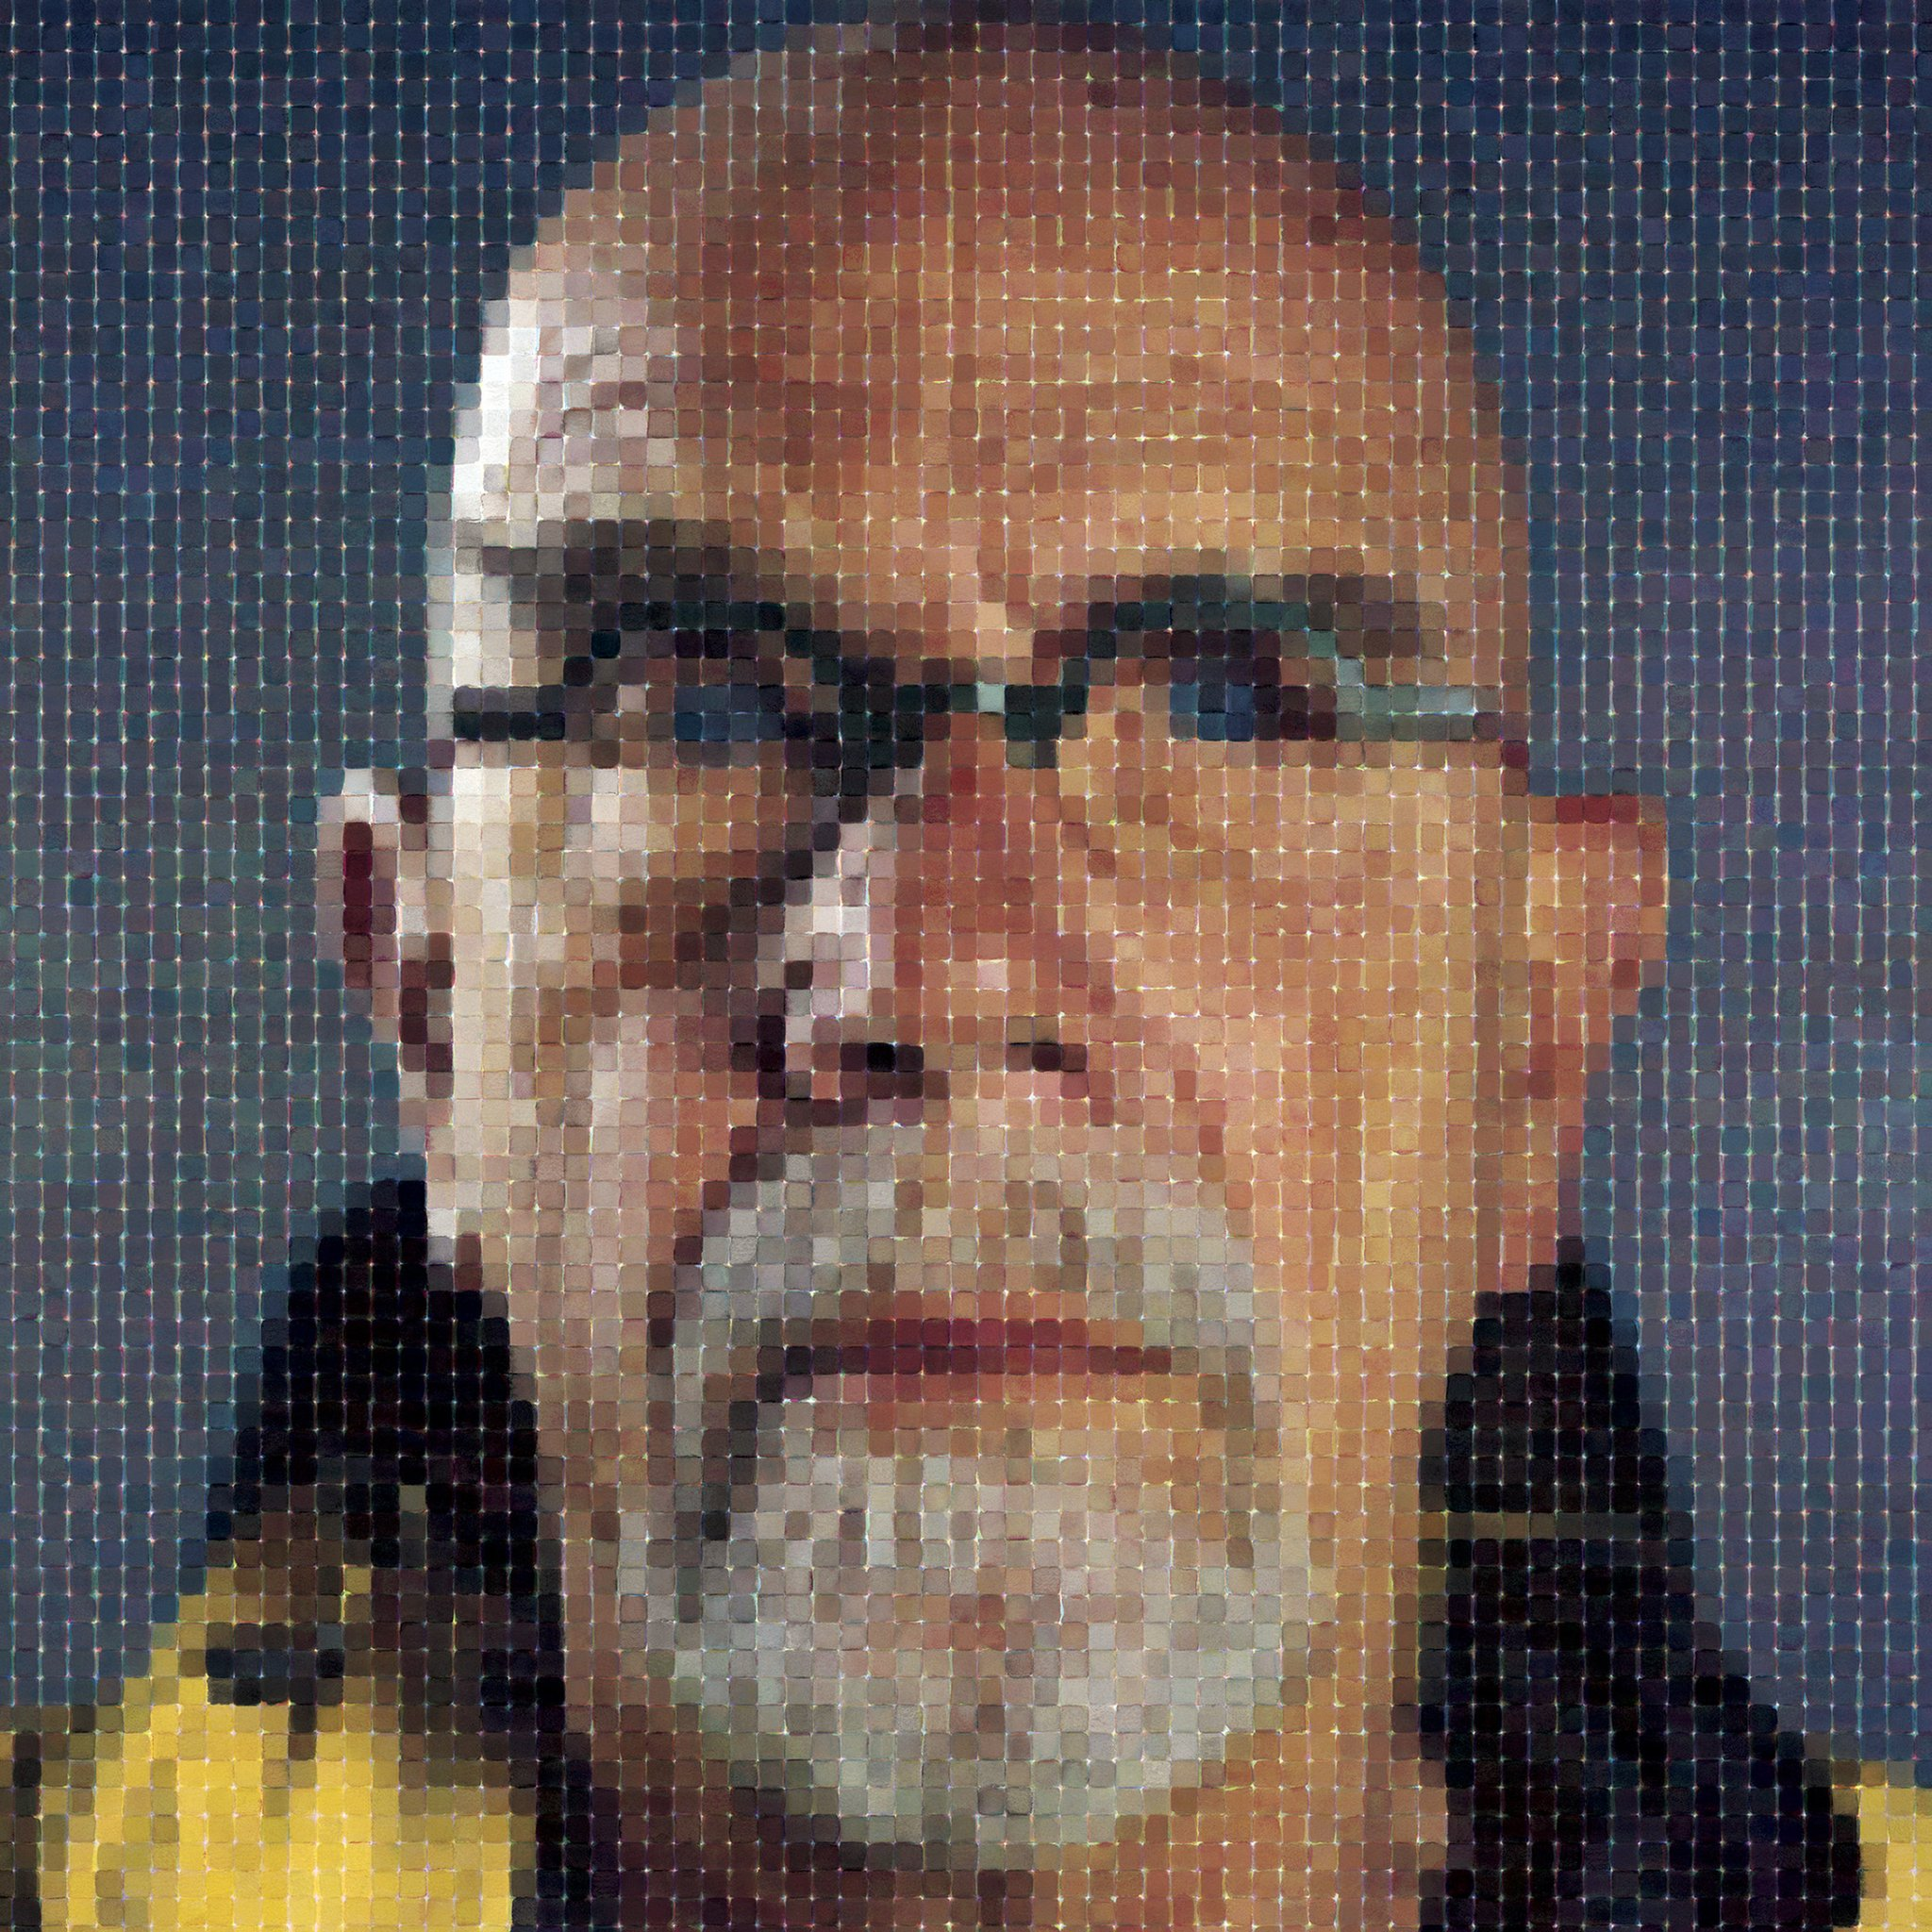 Self-portrait of Chuck made up of tiny squares